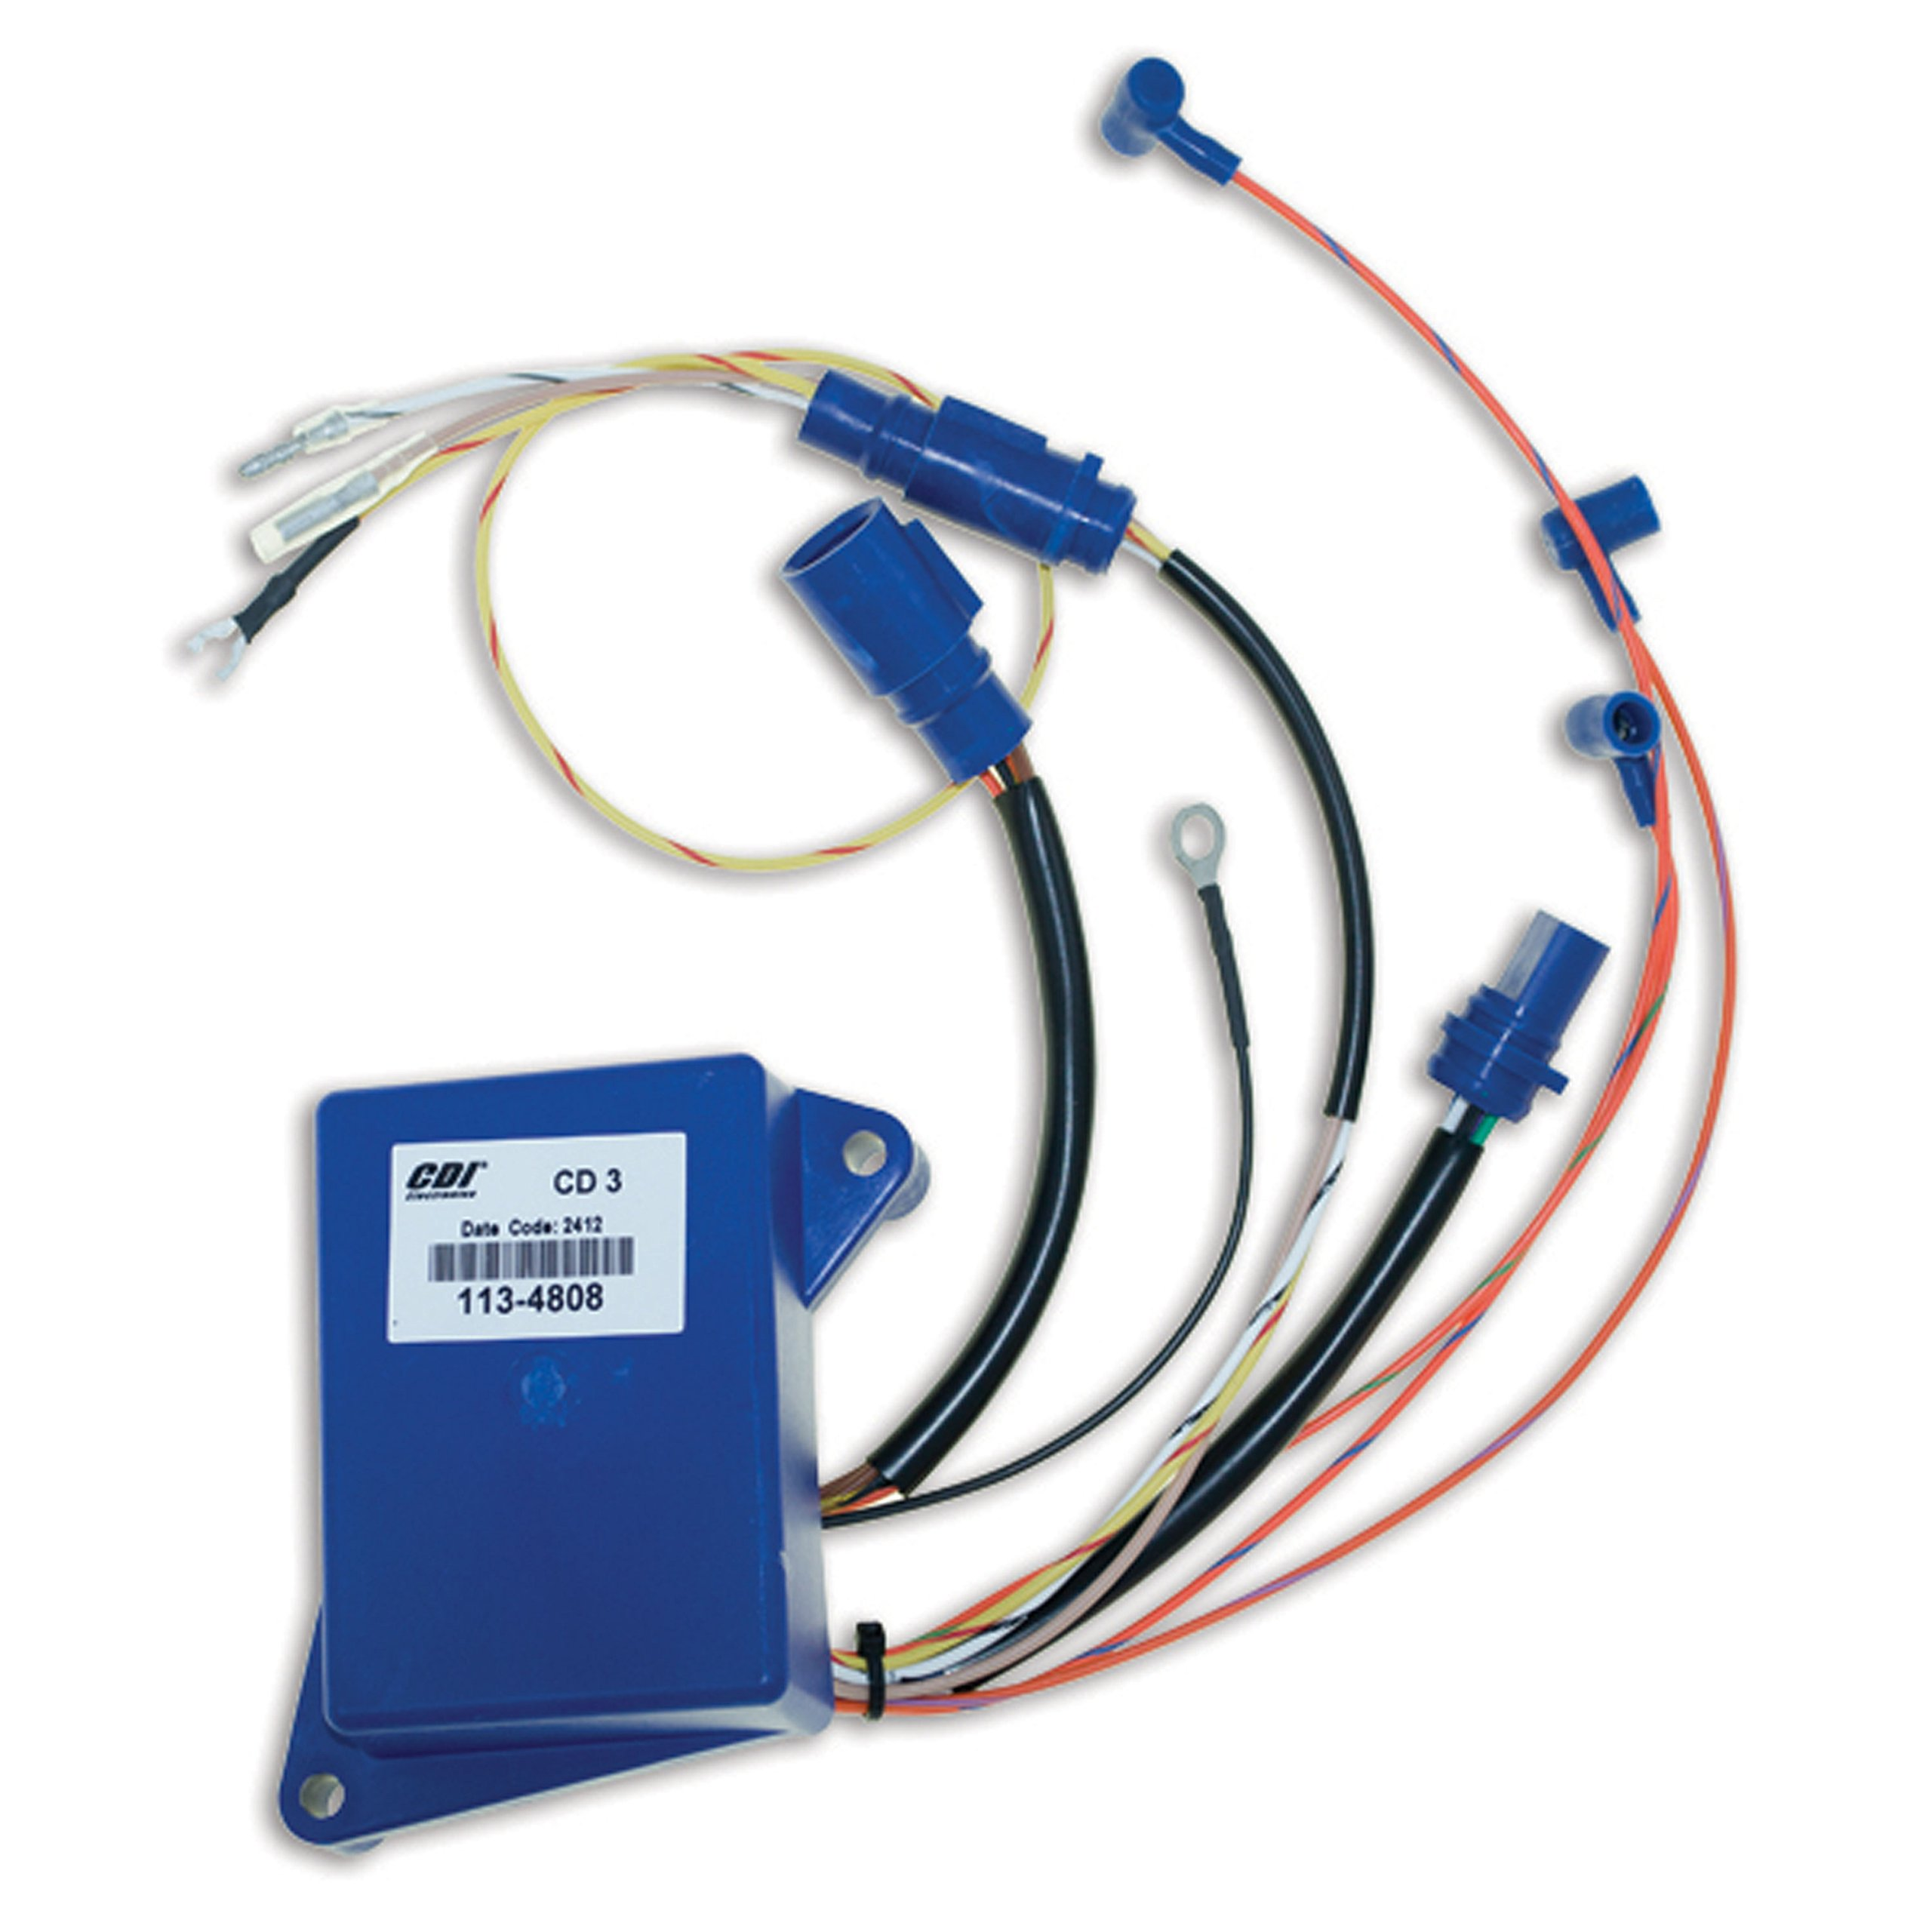 CDI Electronics 113-4808 Power Pack (Johnson/Evinrude - 3 Cyl (1993-2001))